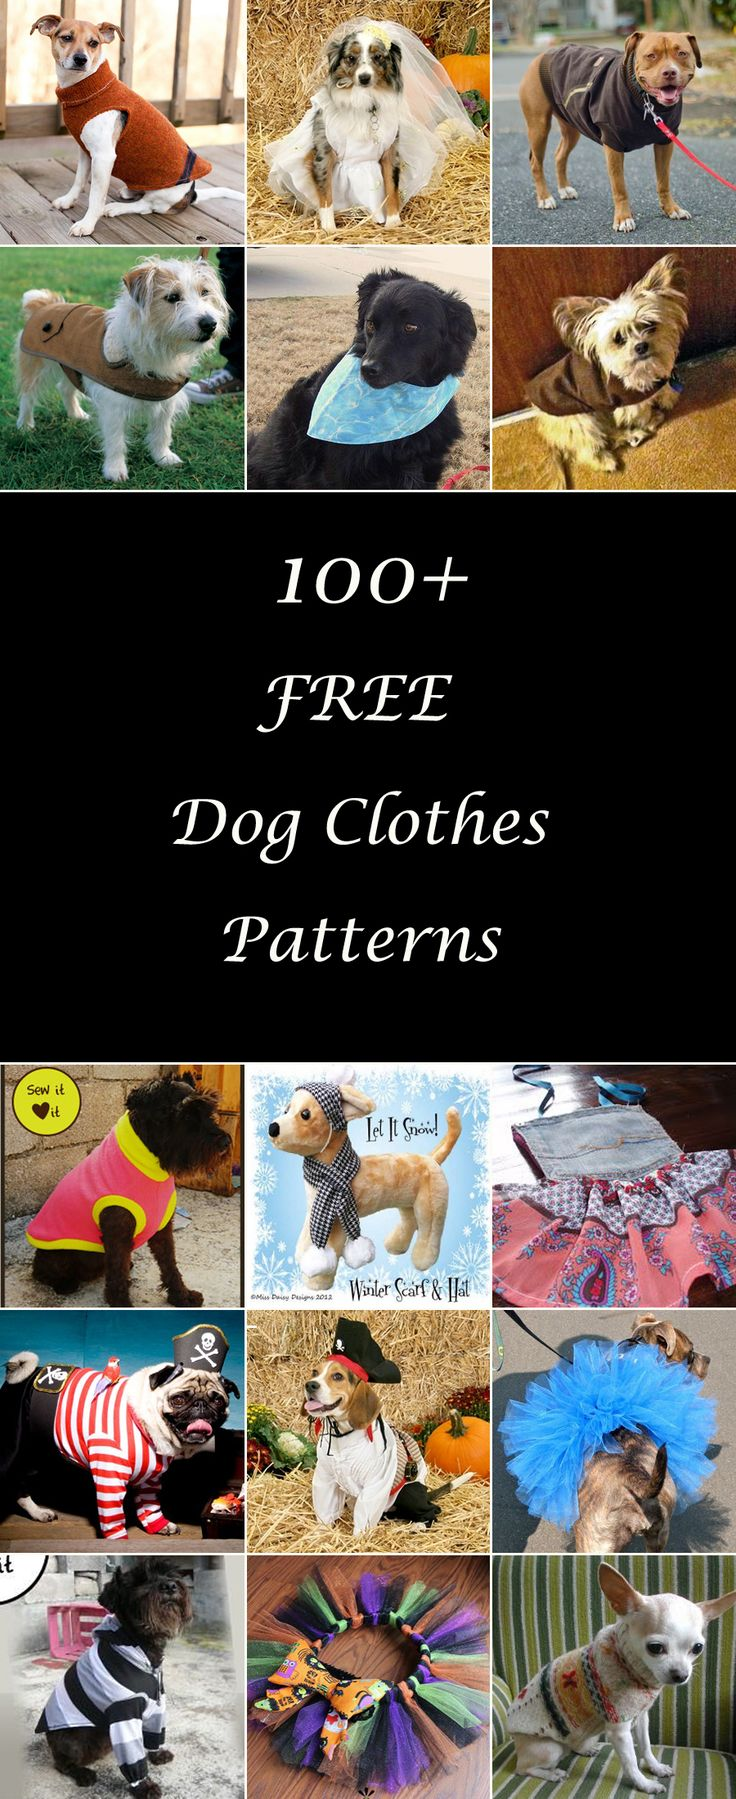 Lots of free dog clothes sewing patterns. Diy dog t-shirts, dresses, coats, and more, for large and small dogs. How to make dog clothes. Dog clothes tutorials & projects.